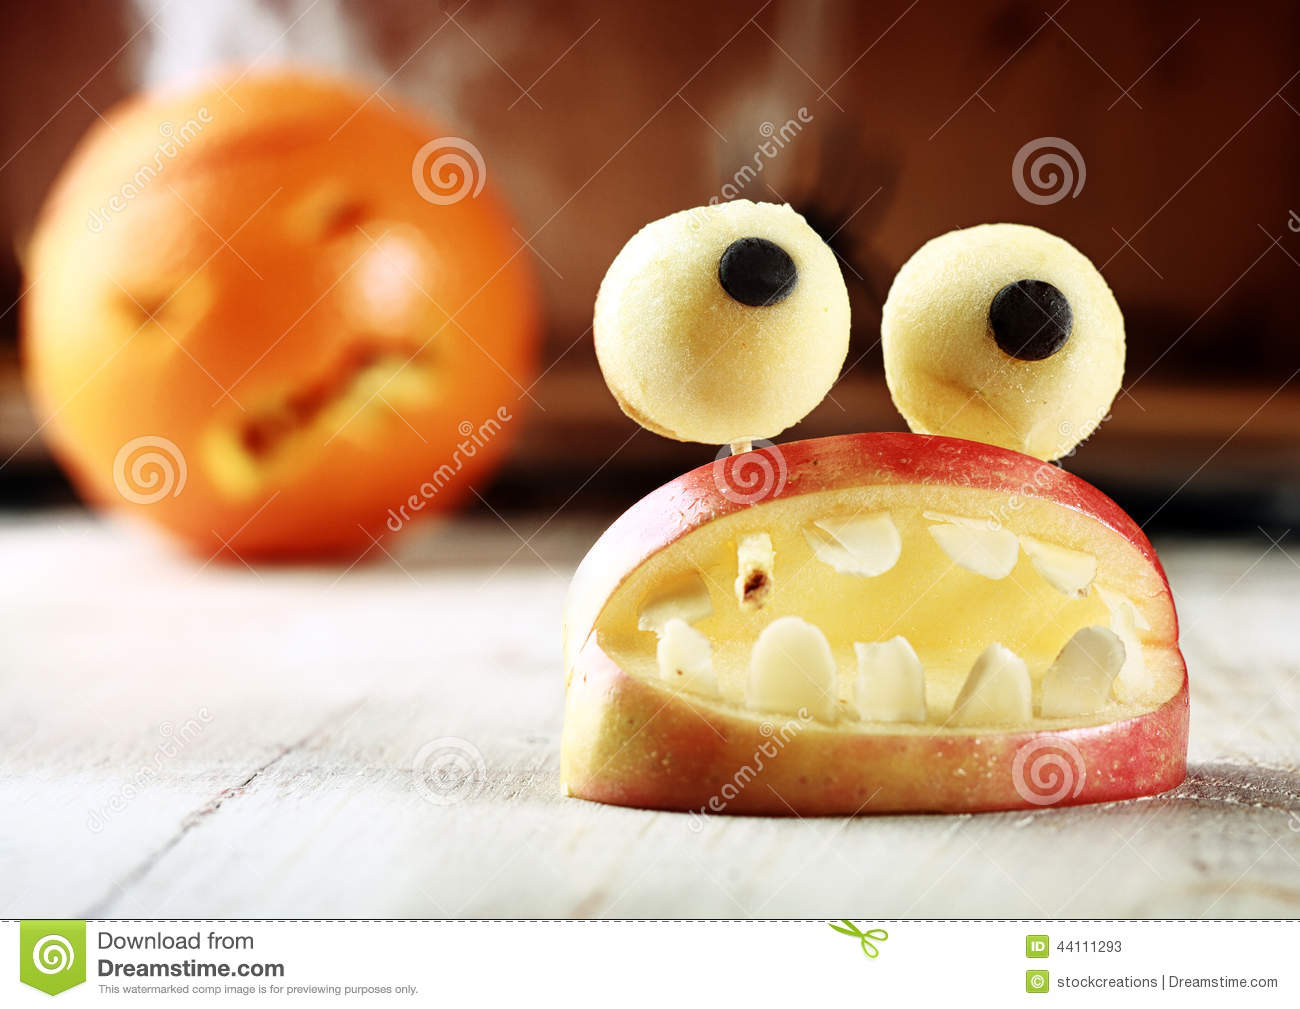 Halloween Treats, Little Monster Dessert Stock Photo - Image: 44486320